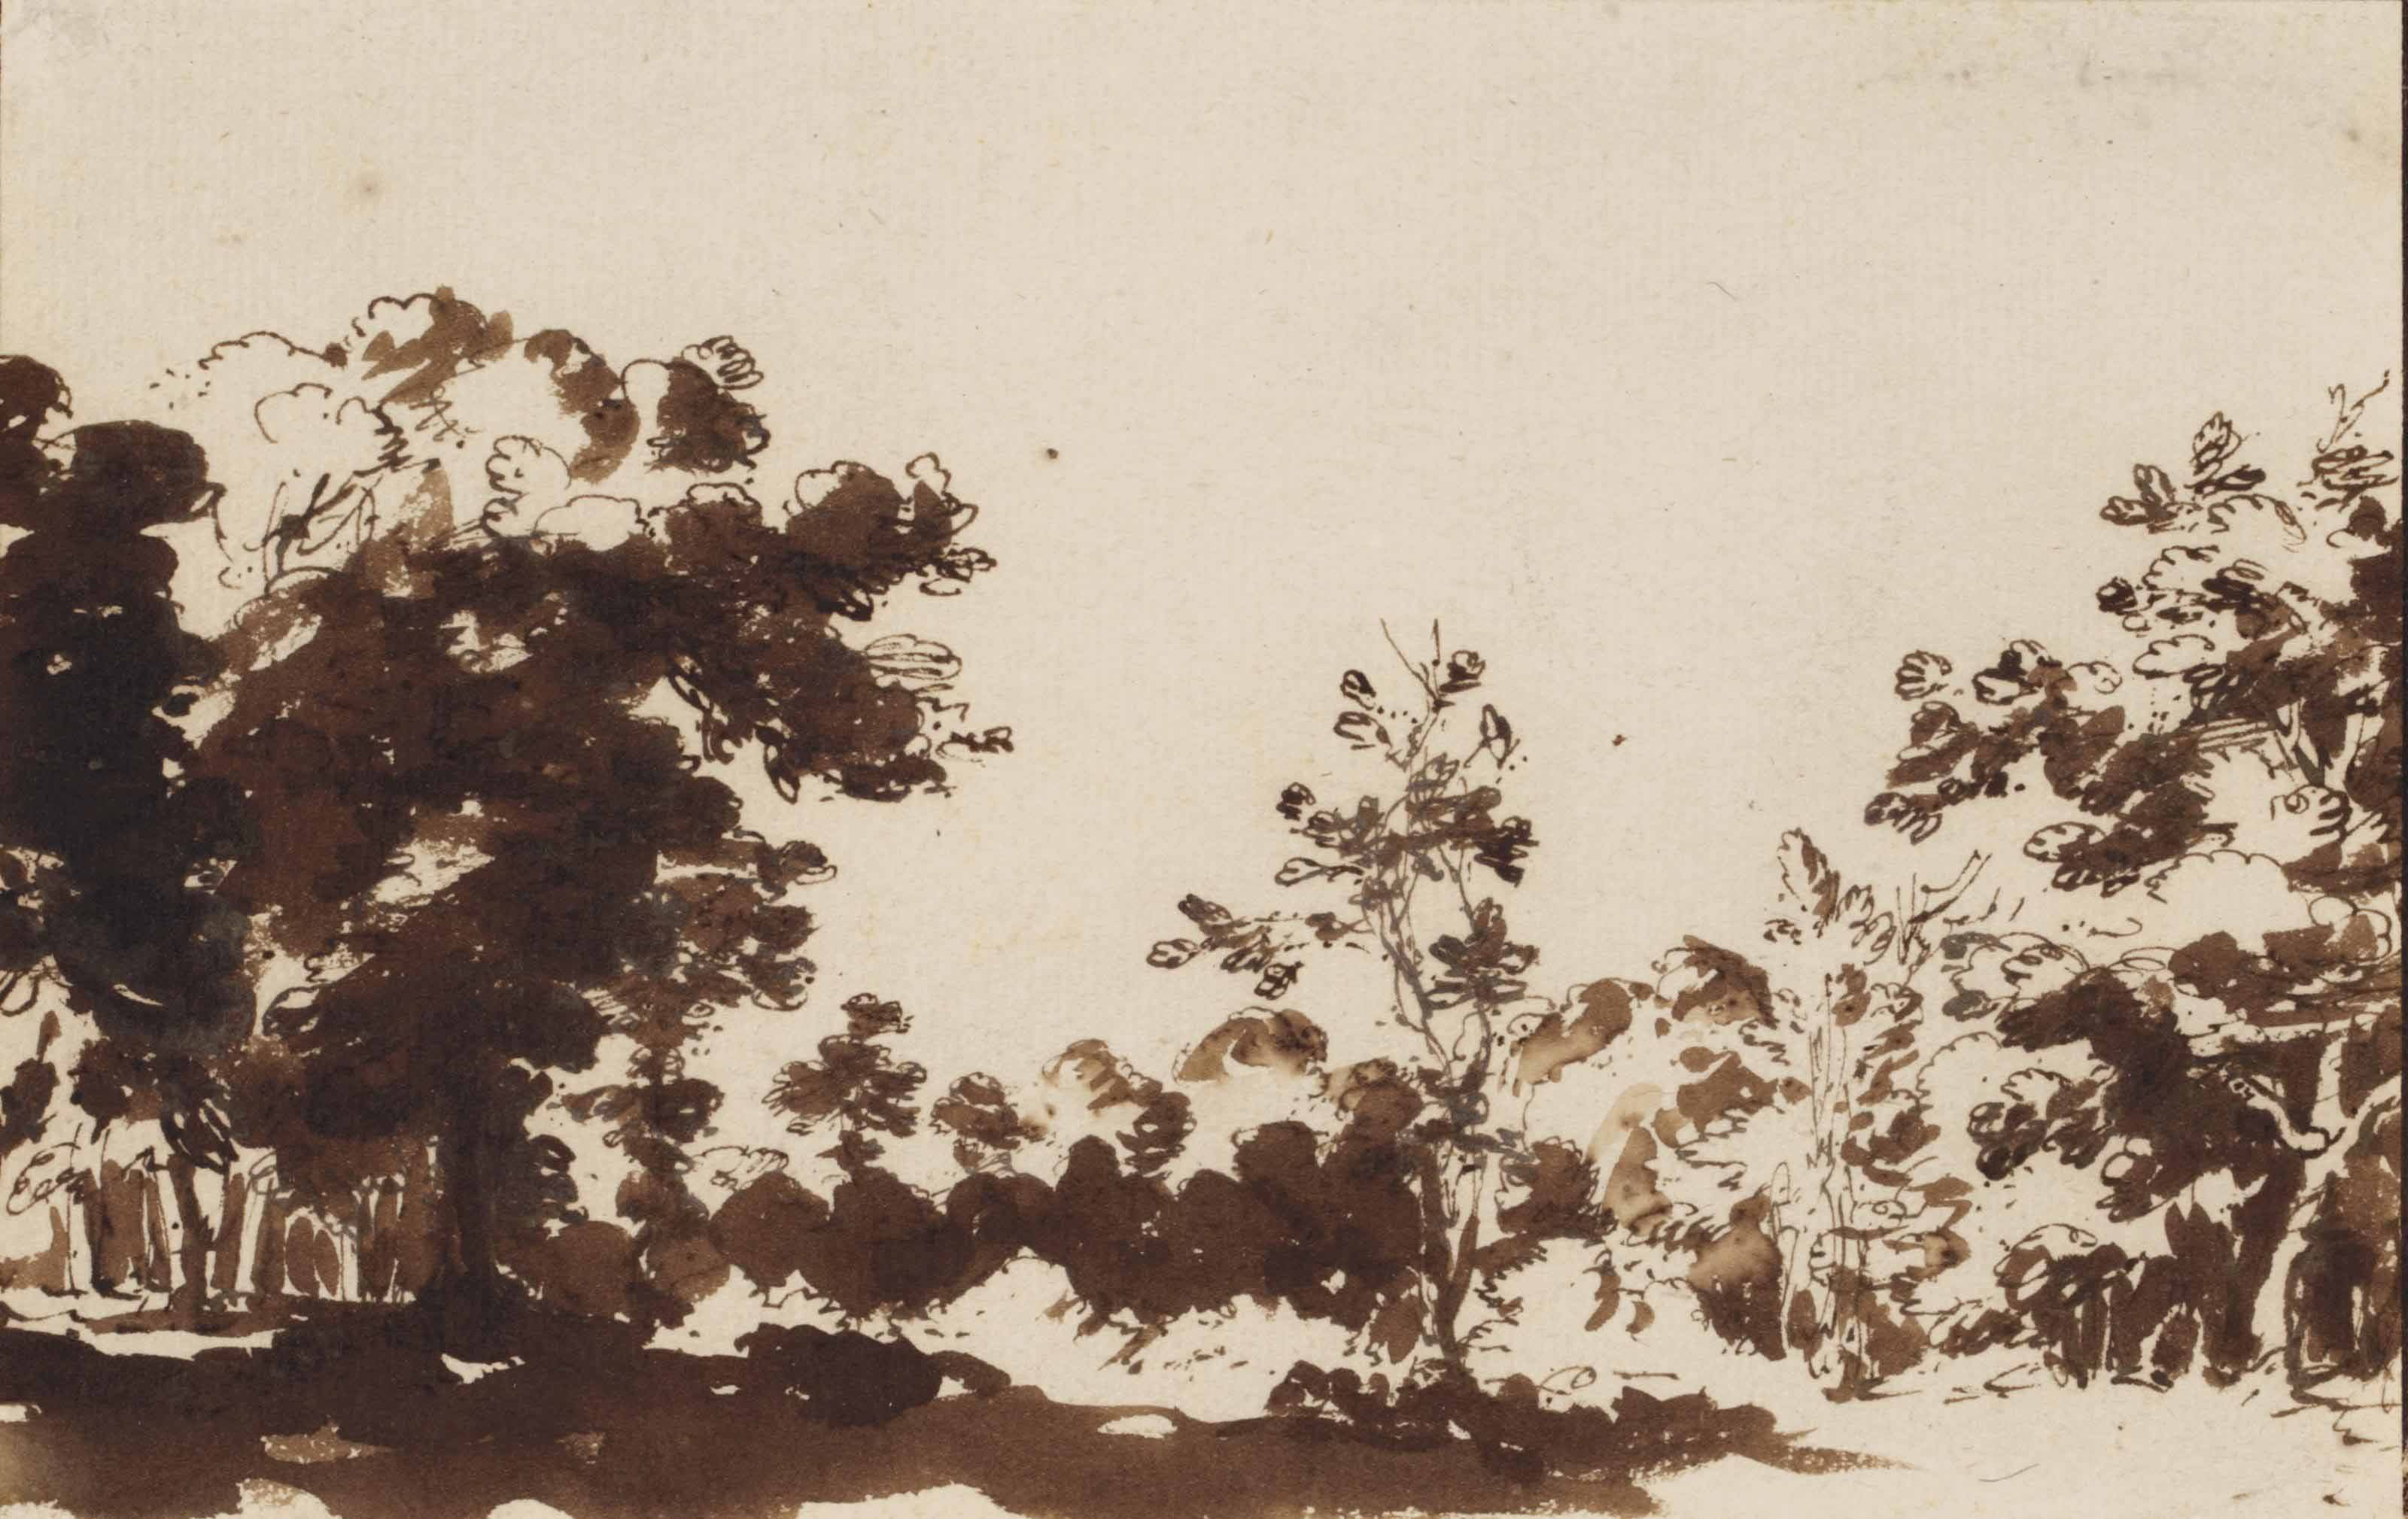 View of the woods at The Hague